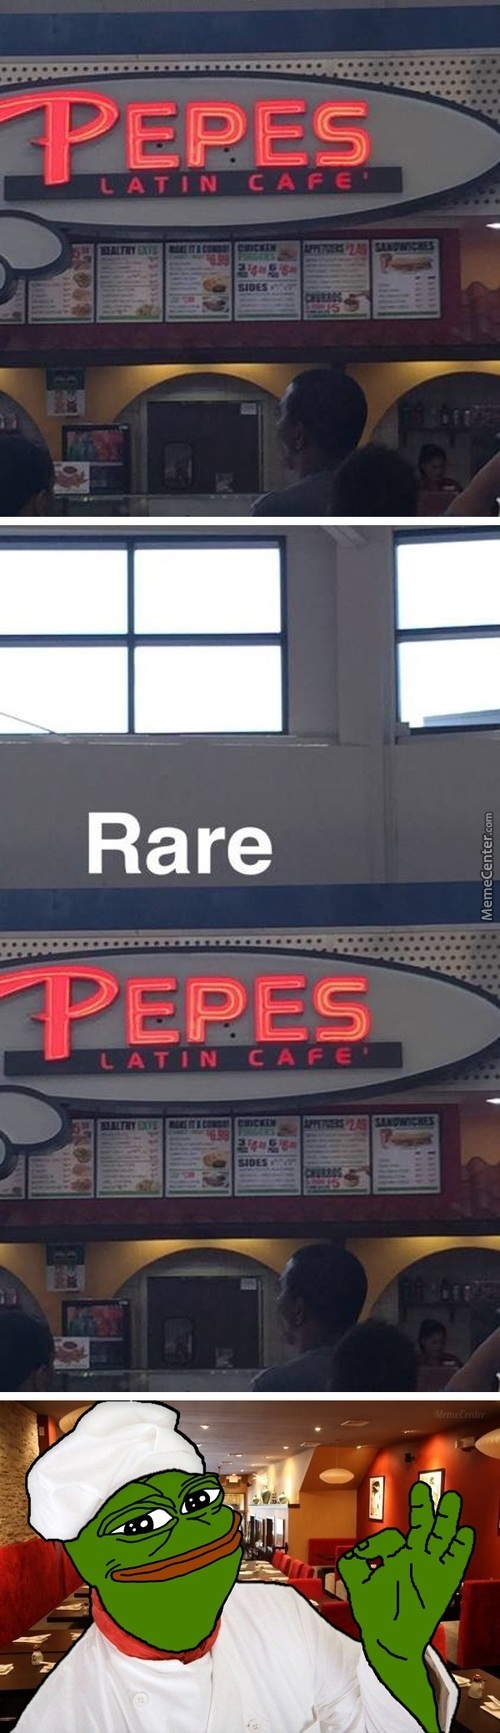 Wojak's Favorite Cafe, They Serve Pee Pee Poo Poo